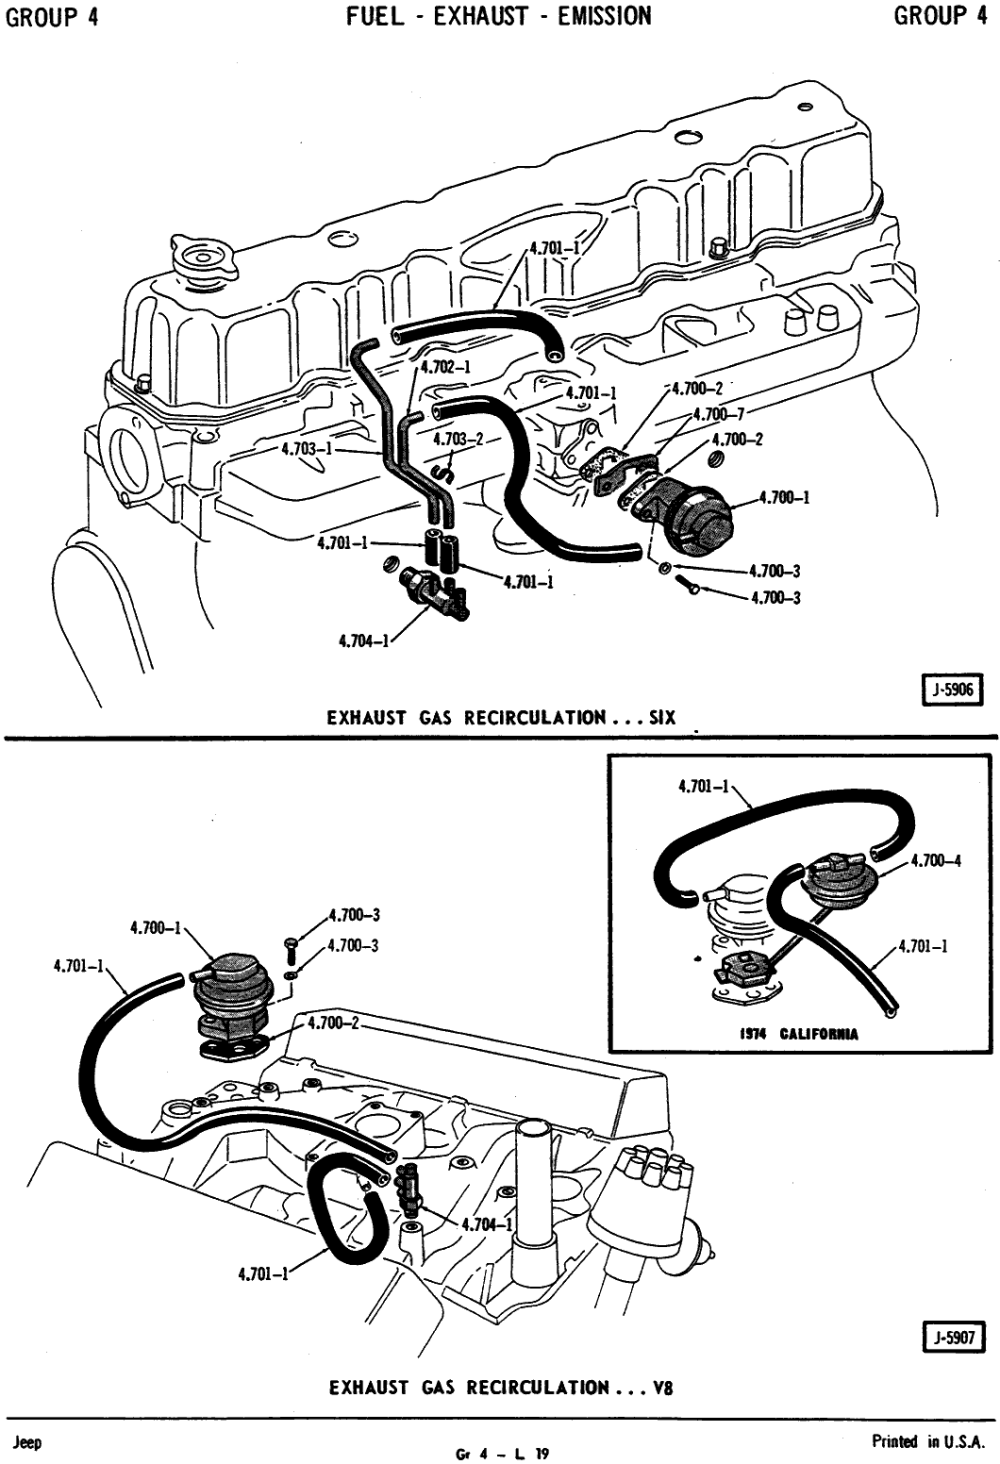 medium resolution of 1990 jeep fuel system diagram wiring diagram source 1990 jeep wrangler engine 1990 jeep wrangler fuel system diagram